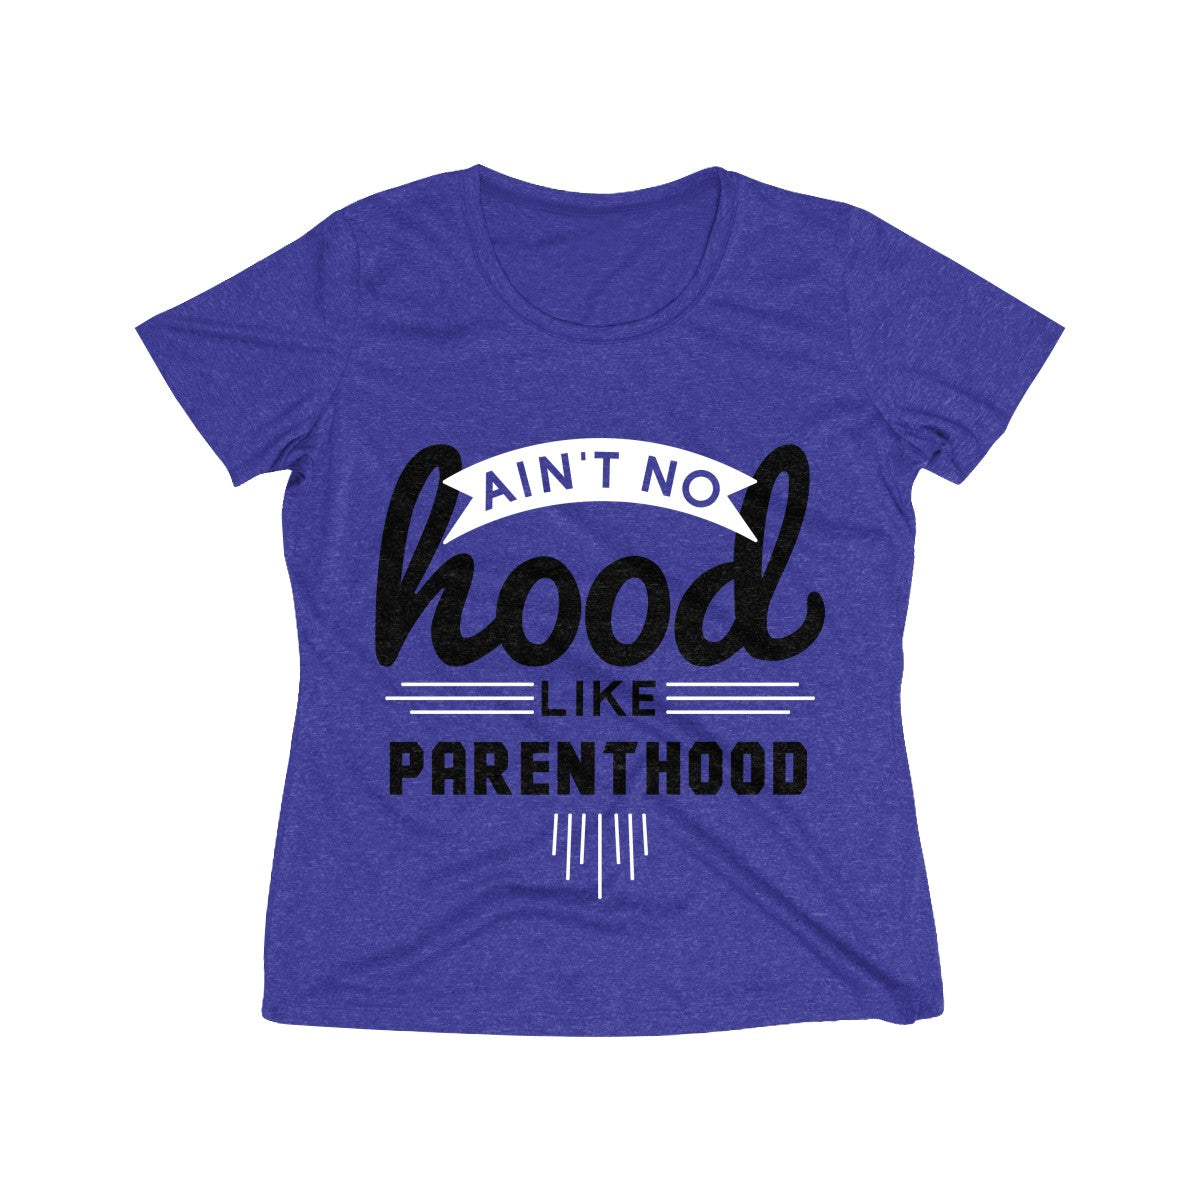 Ain't No Hood Like Parenthood T-Shirt (Adult Sizes), dark purple